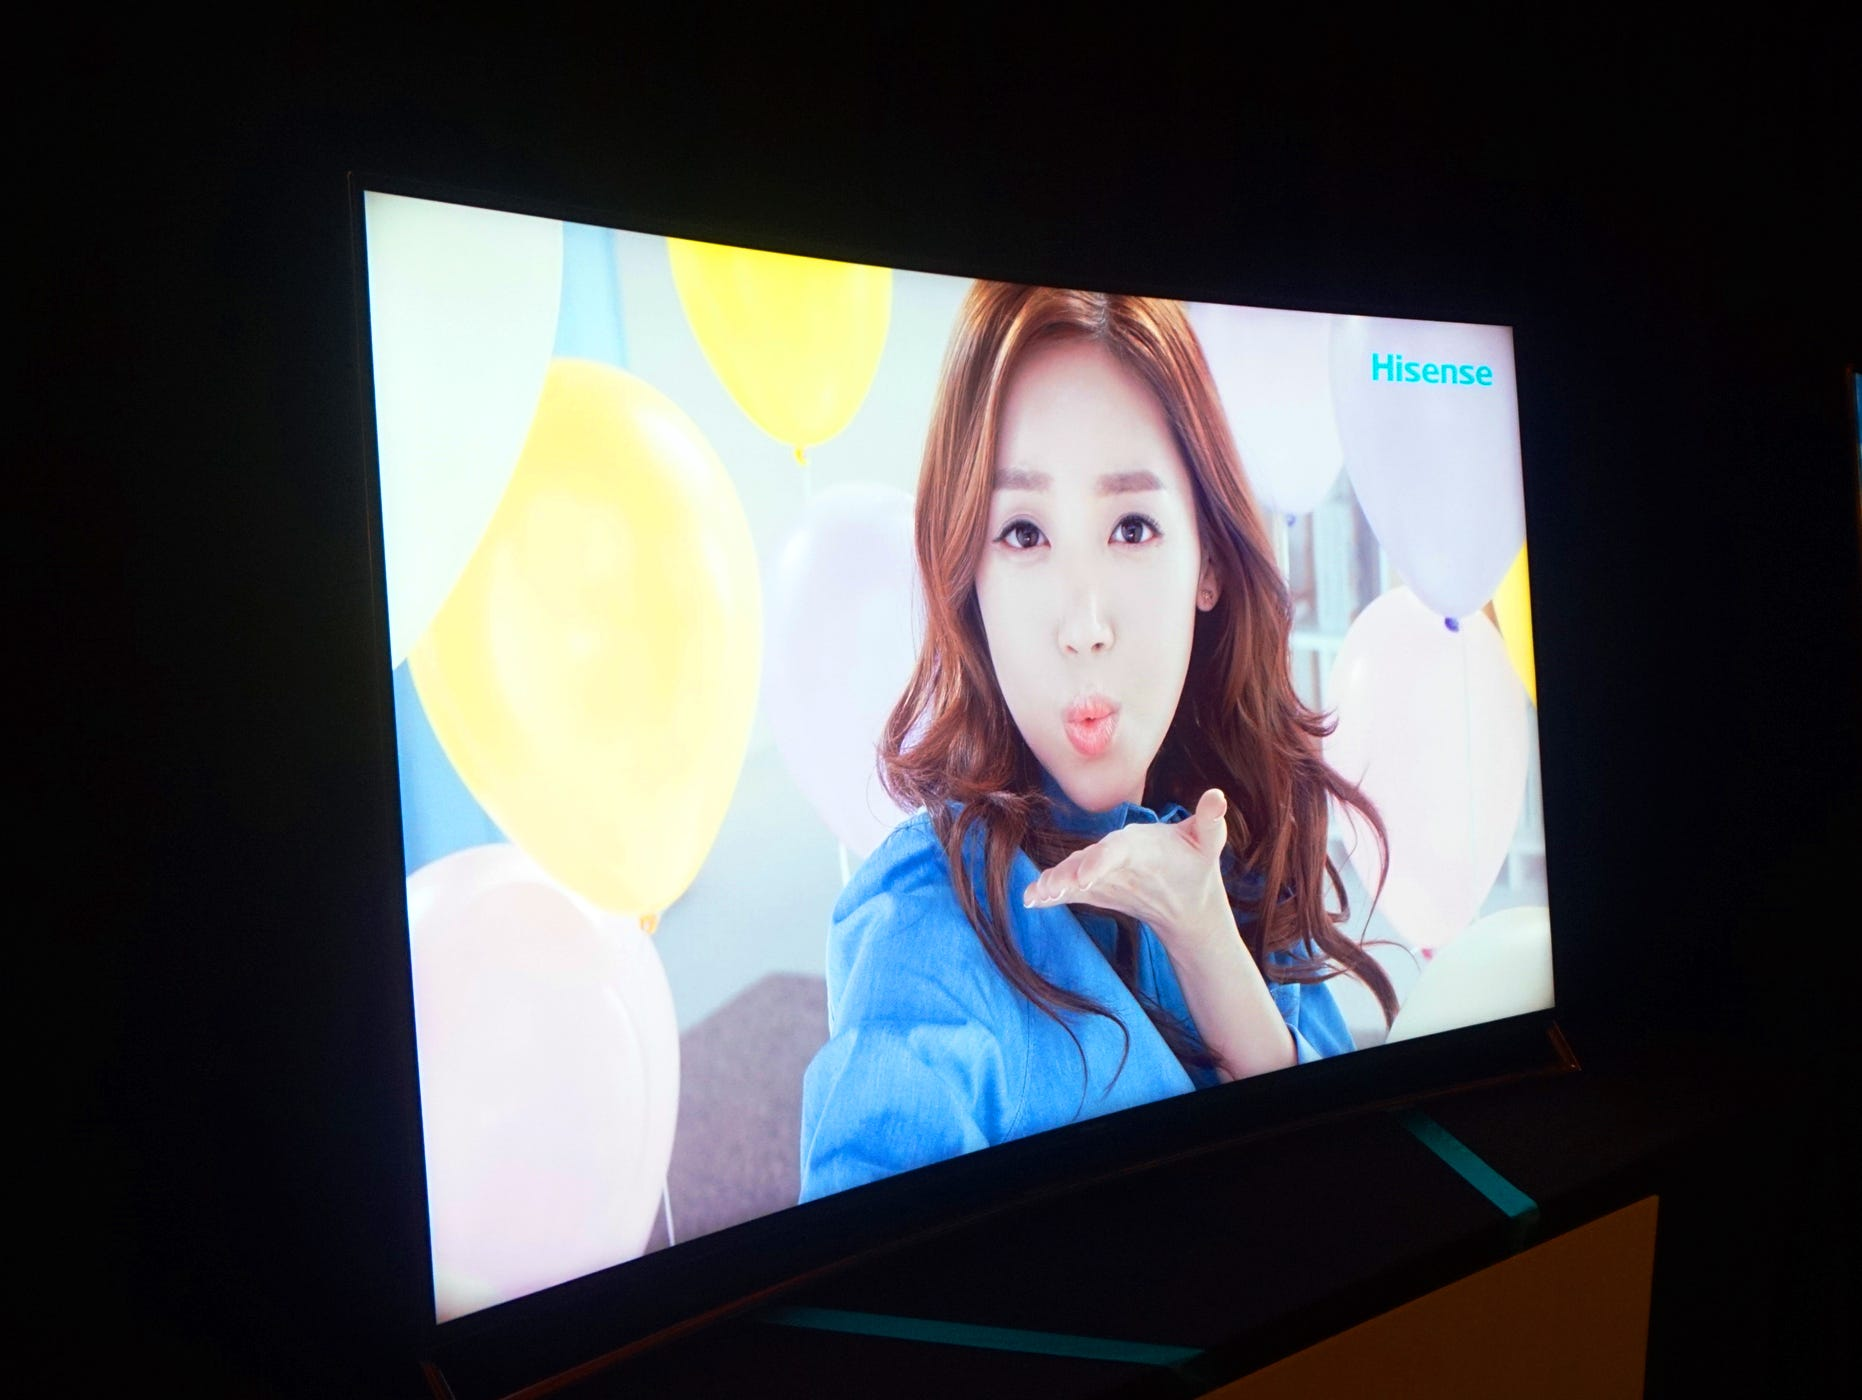 Hisense's new TV offers tech found in much more expensive rivals.